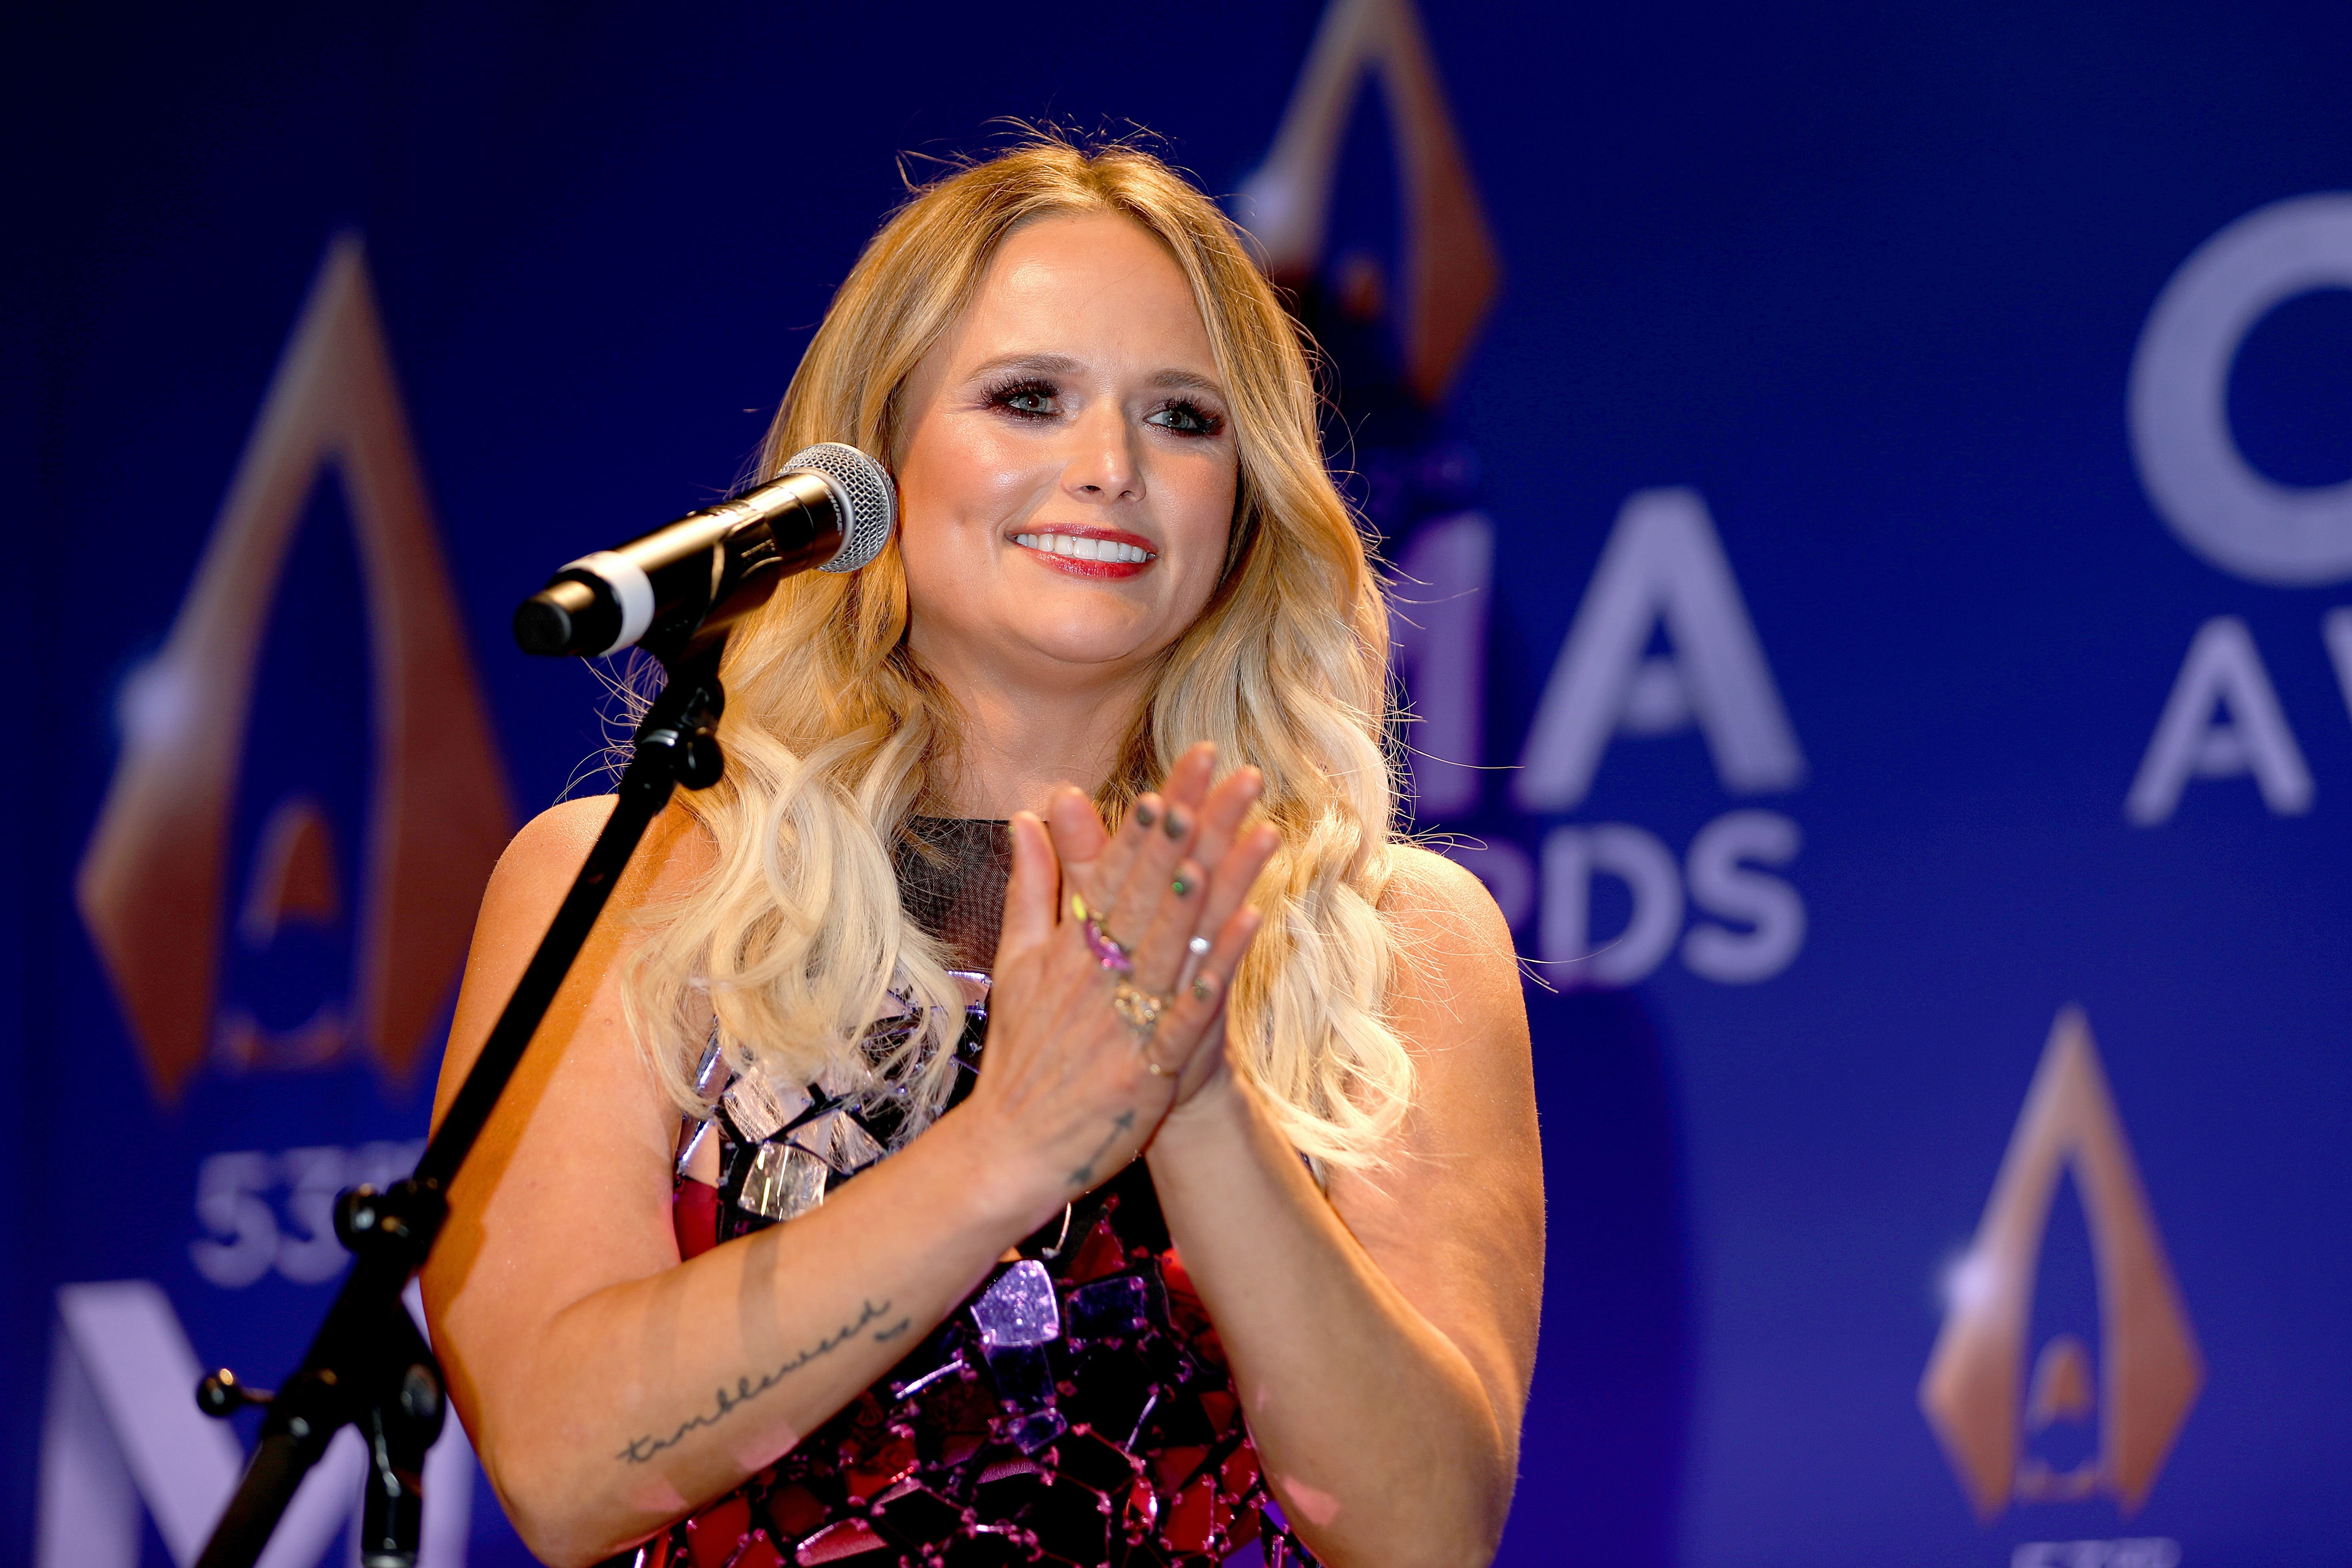 Miranda Lambert during the 53rd annual CMA Awards at the Bridgestone Arena on November 13, 2019 in Nashville, Tennessee. | Source: Getty Images